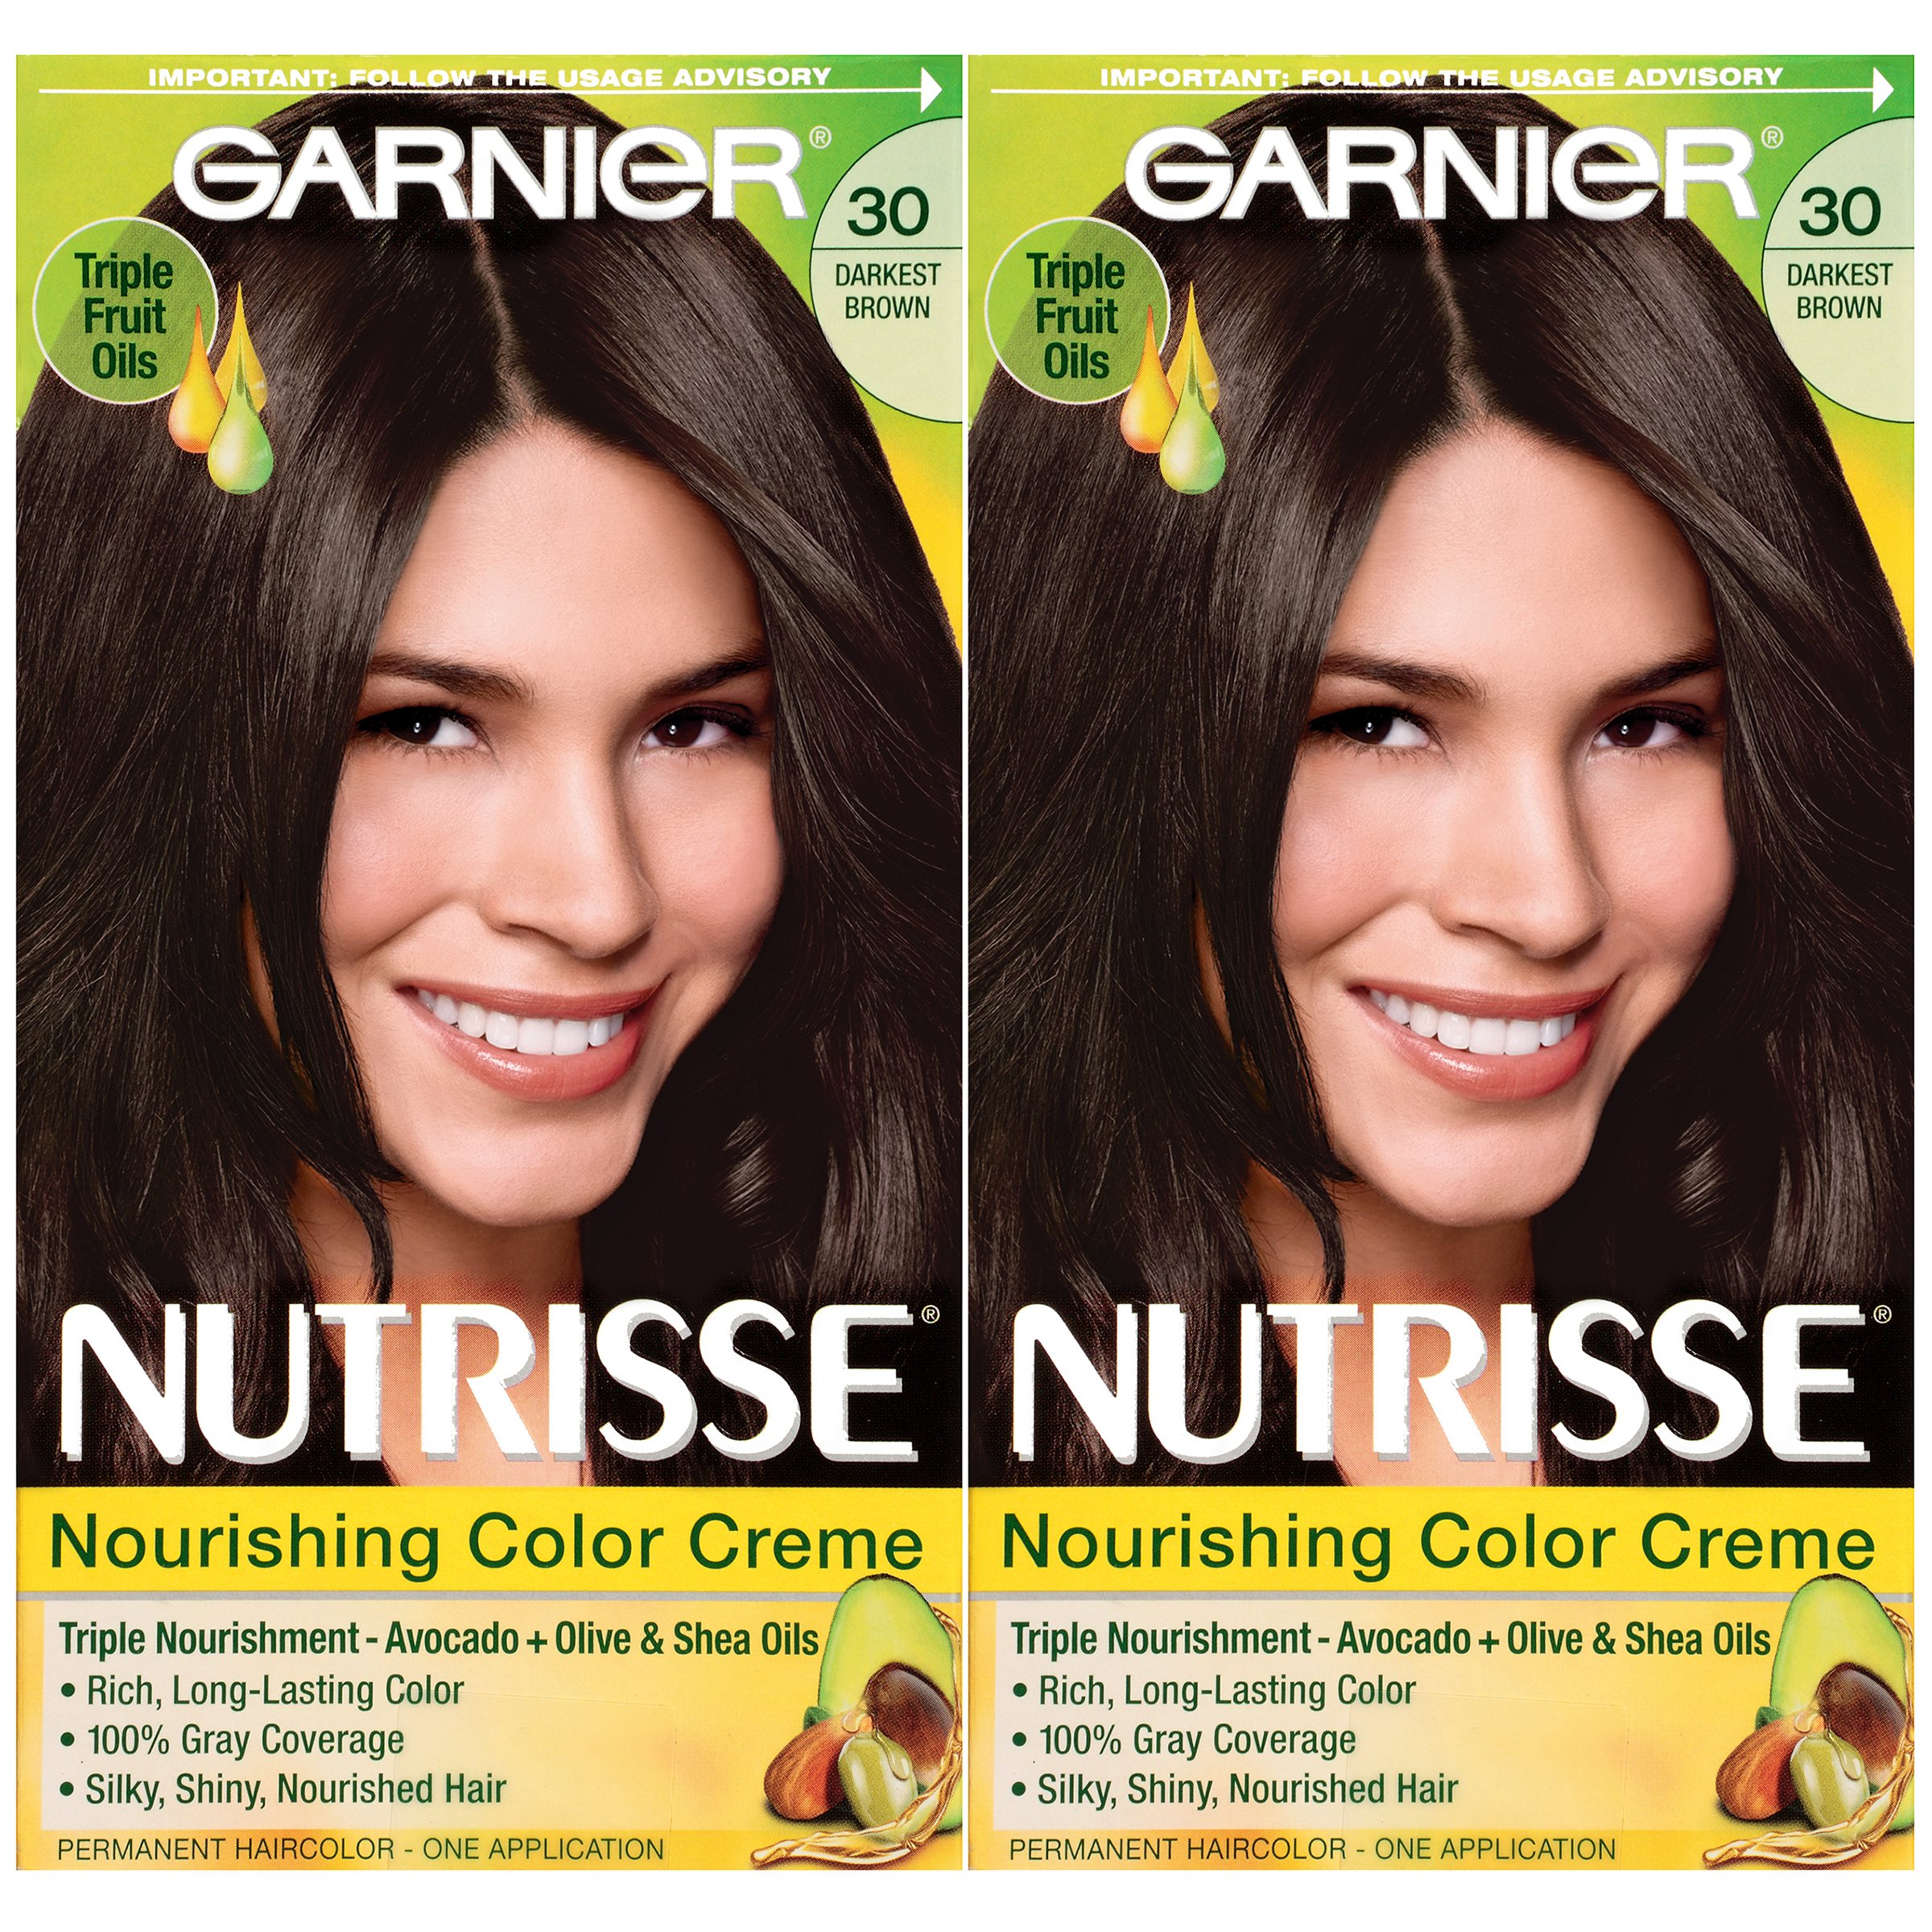 Garnier Hair Color Nutrisse Nourishing Creme, 30 Darkest Brown (Sweet Cola), 2 Count